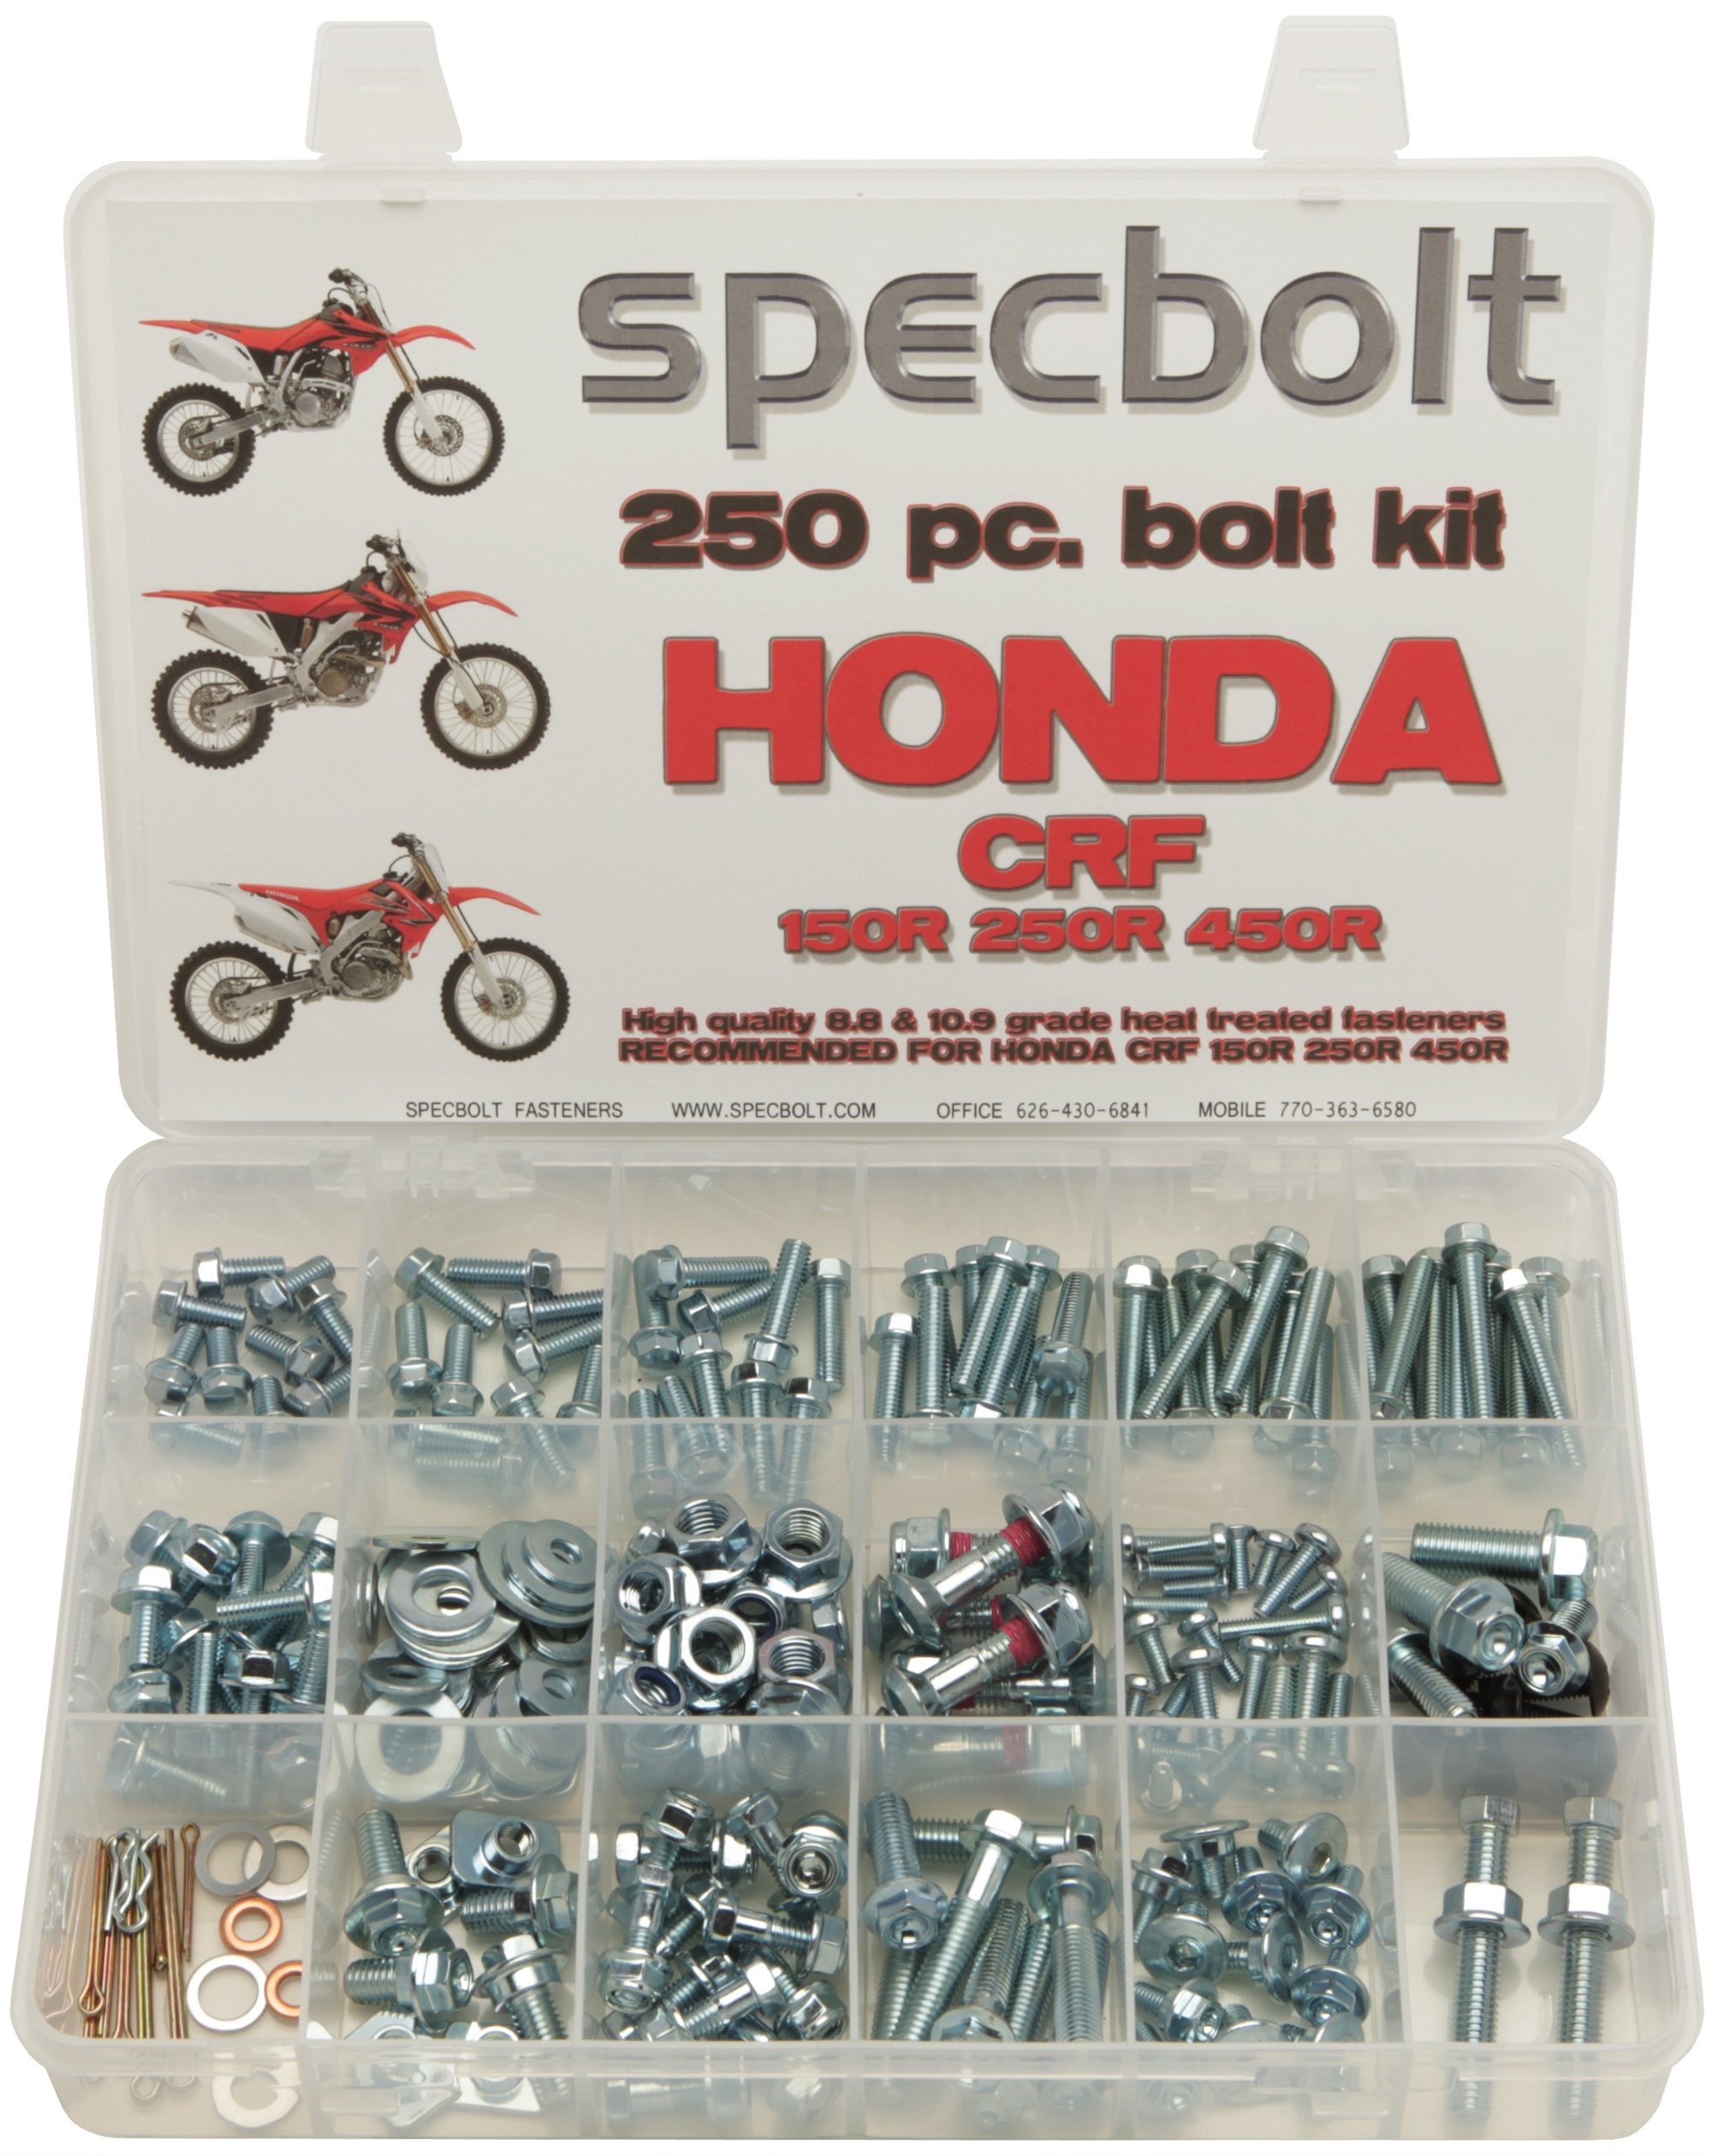 250pc Specbolt Honda CRF150 CRF250 CRF250 Bolt Kit Maintenance & Restoration of MX Dirtbike OEM Spec Fasteners CRF 150 250 450 by Specbolt Fasteners